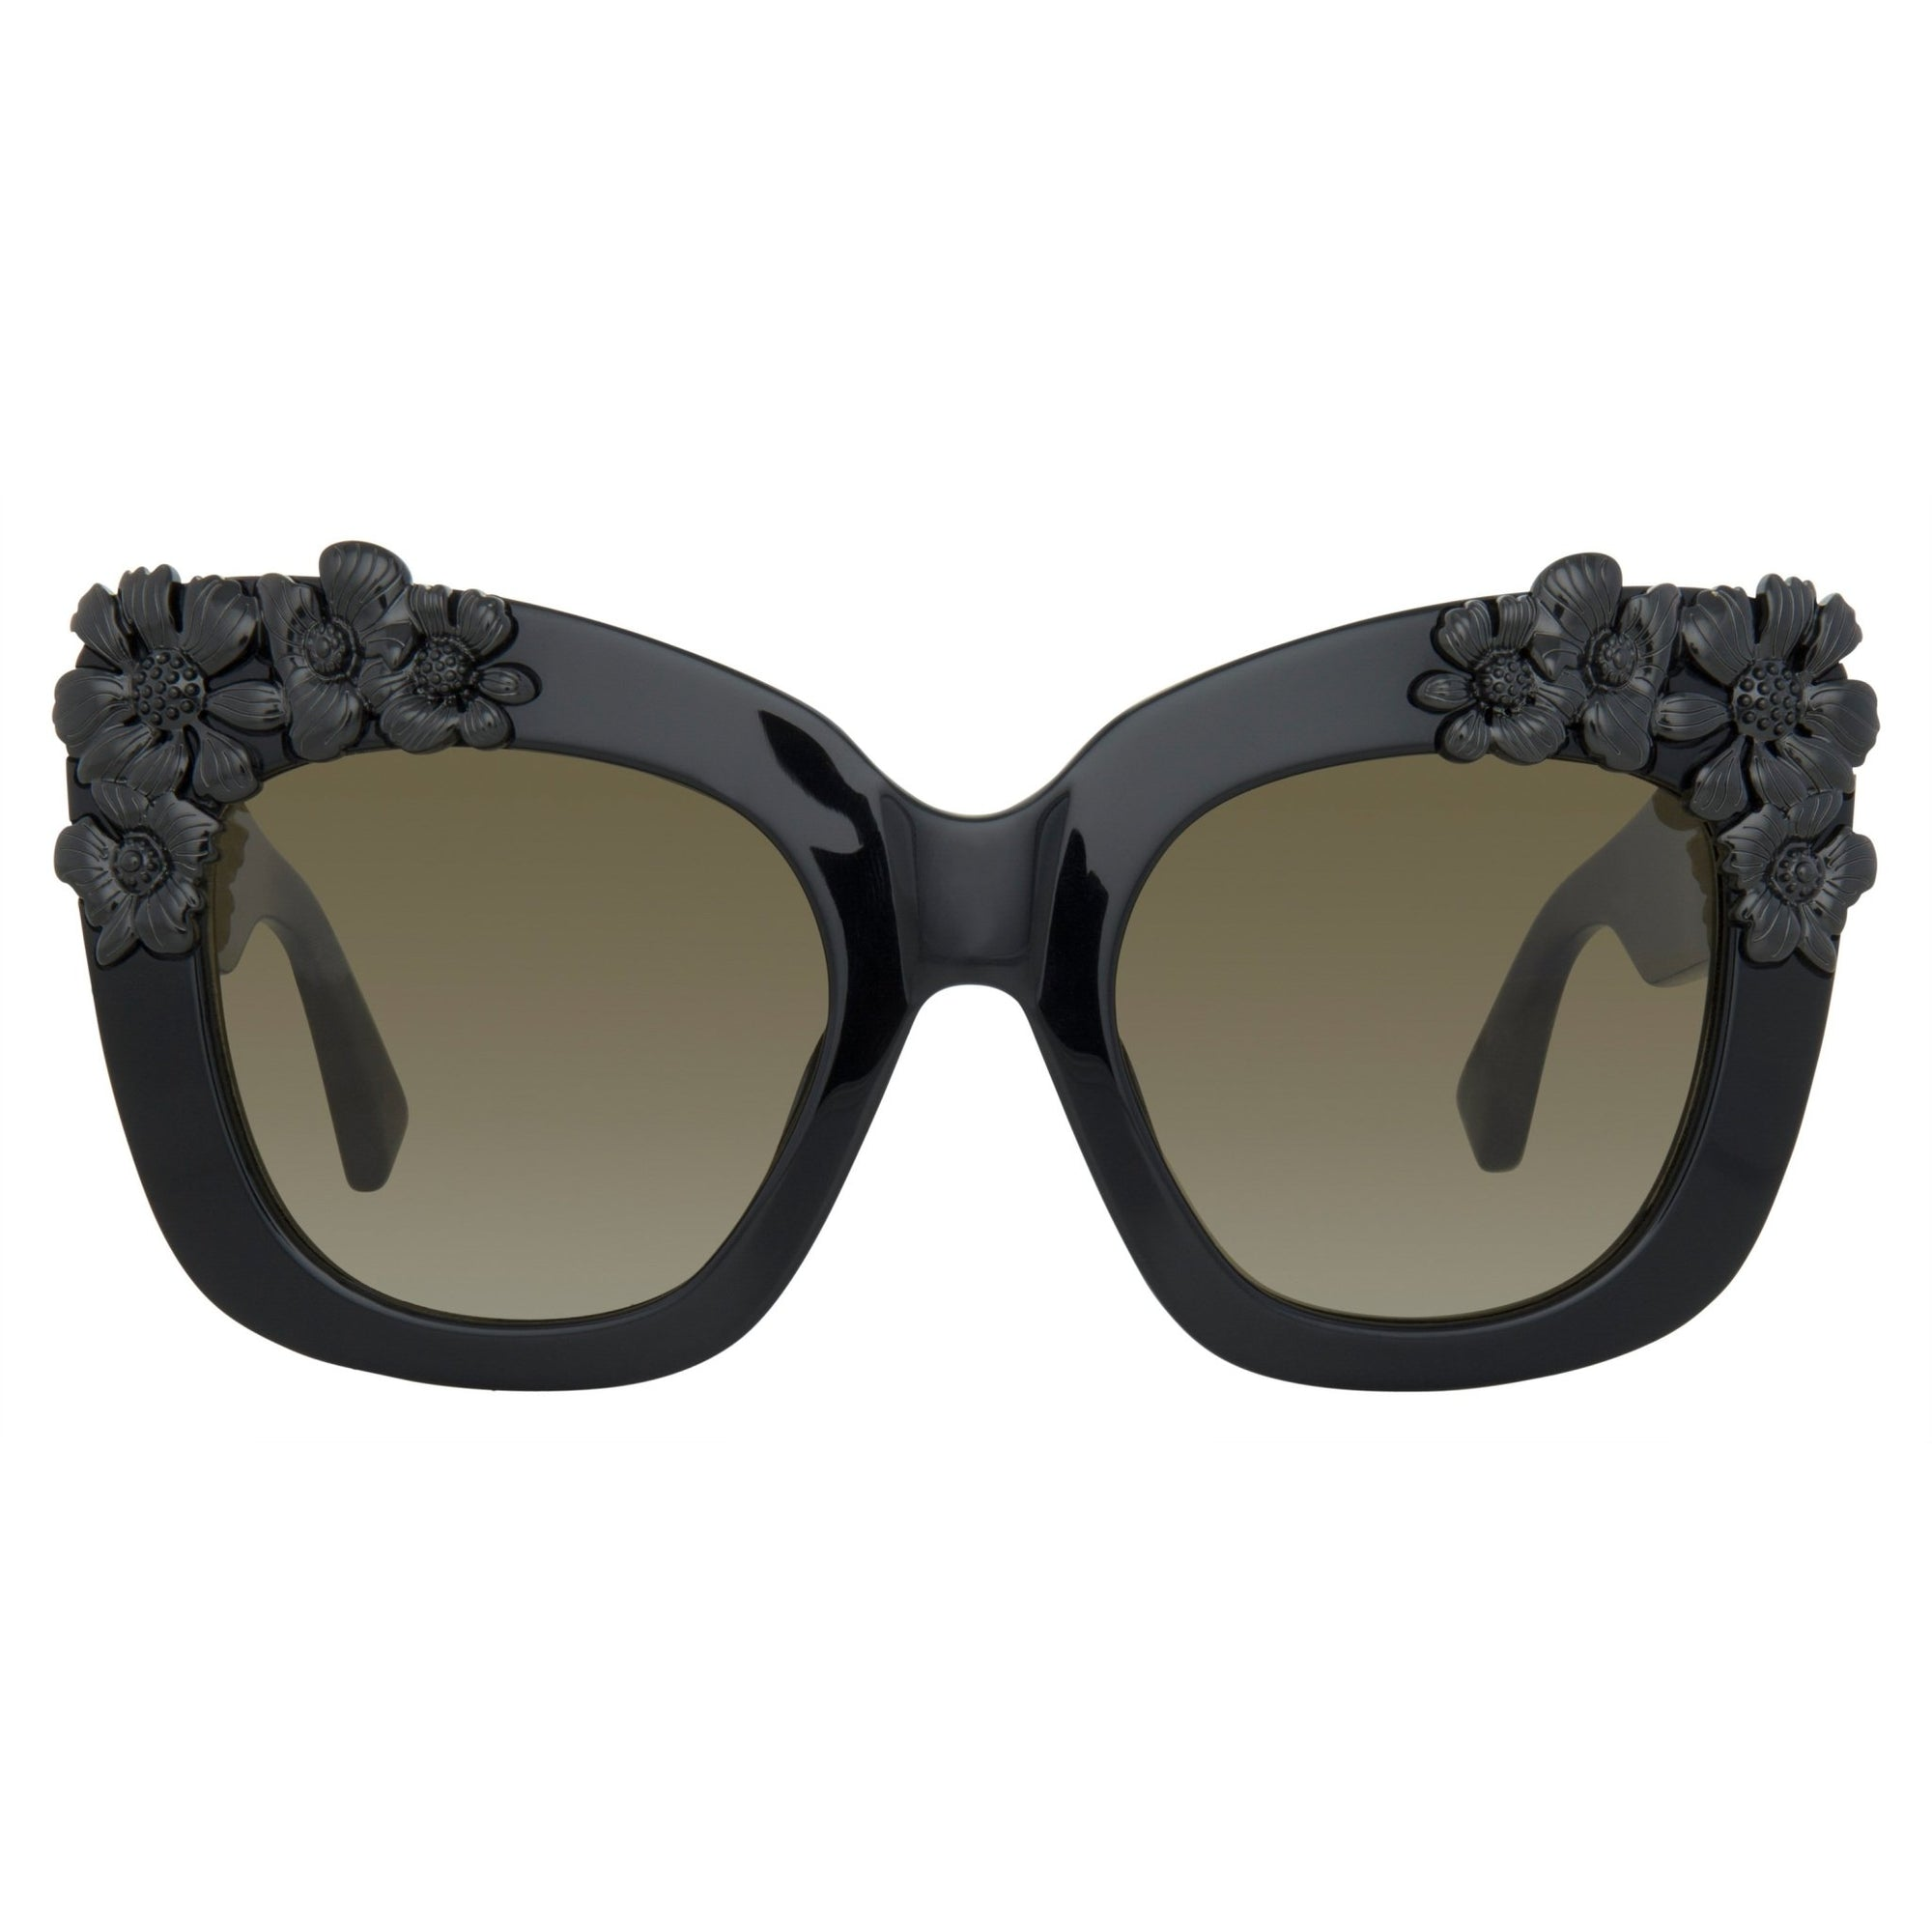 Erdem Women Sunglasses Cat Eye Black Flower with Grey Graduated Lenses Category 3 EDM24C4SUN - Watches & Crystals